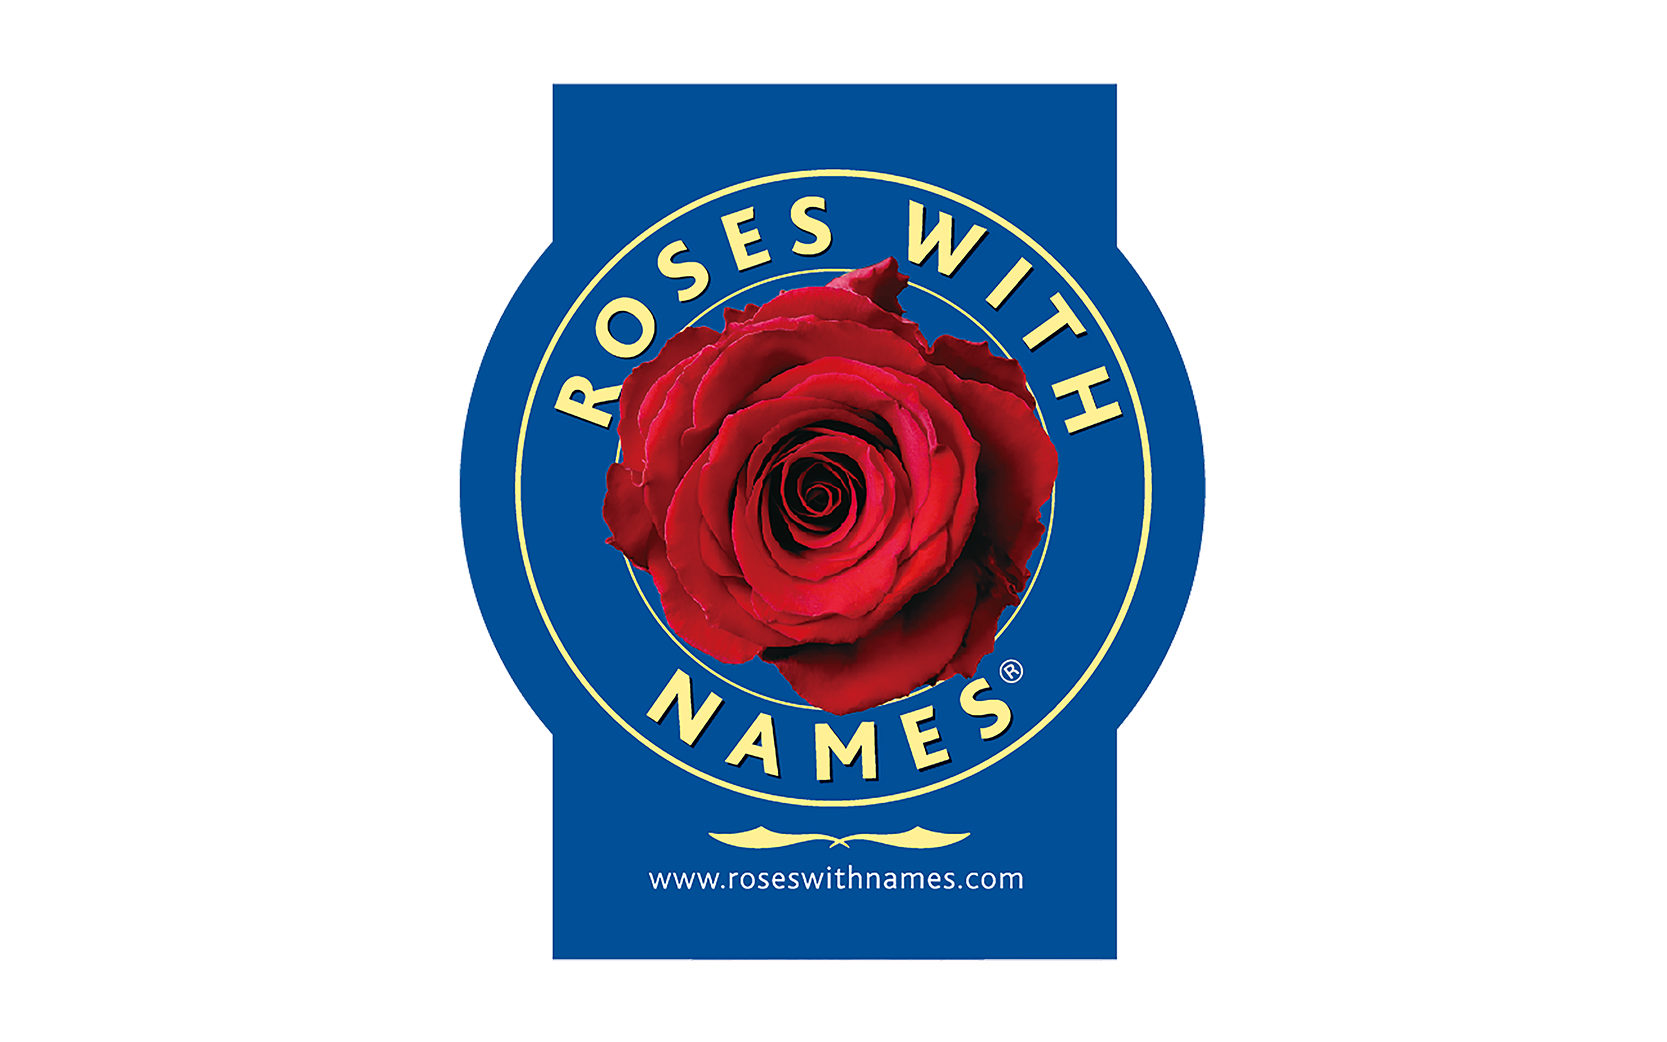 Roses With Names